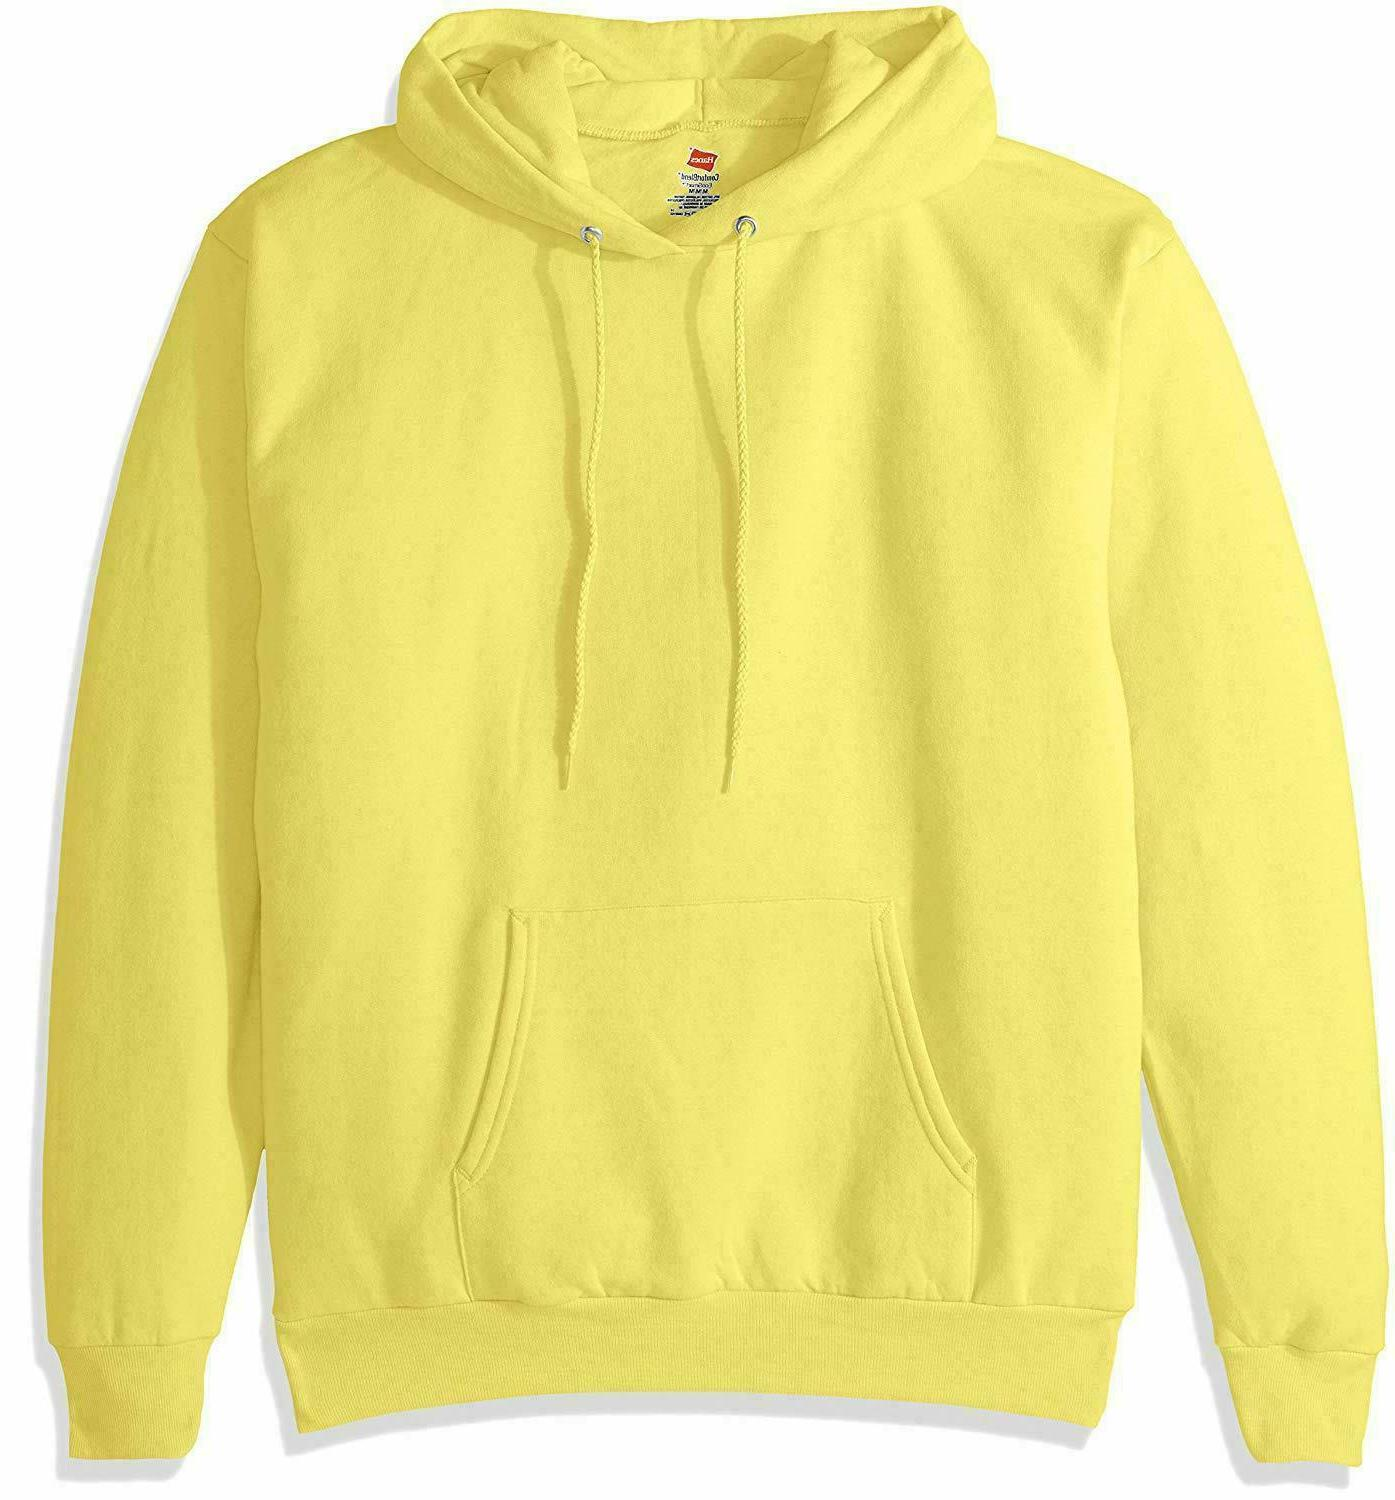 Hanes Men's Pullover EcoSmart Fleece Hooded Sweatshirt, Yell